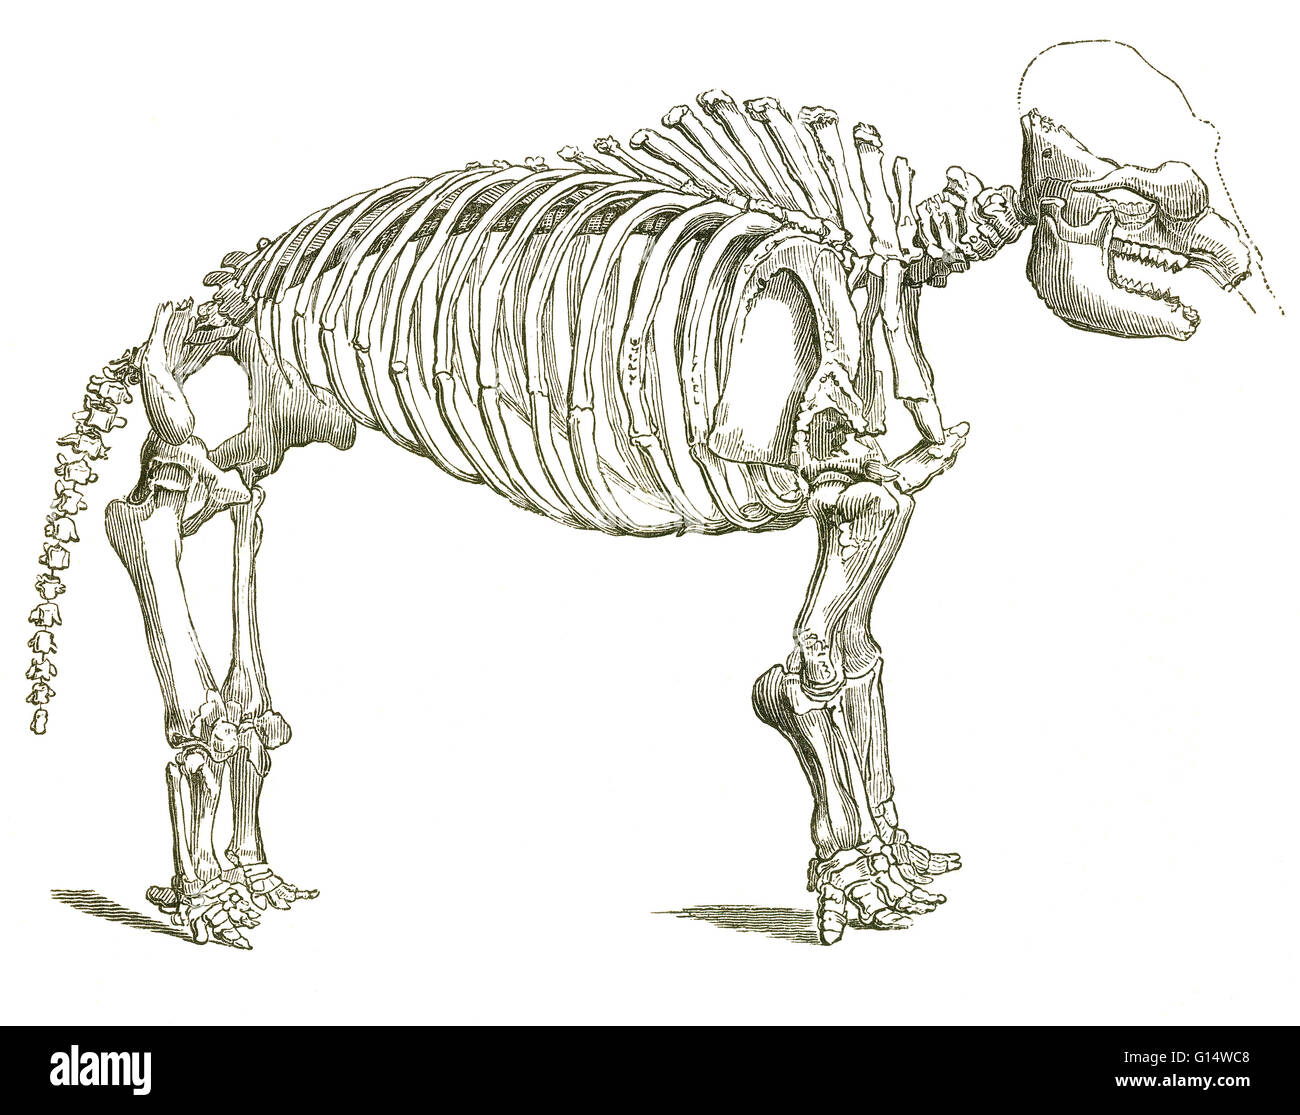 Illustration of a skeleton of a mastodon (Mastodon giganteus, now known as Mammut americanum), a pachyderm that - Stock Image